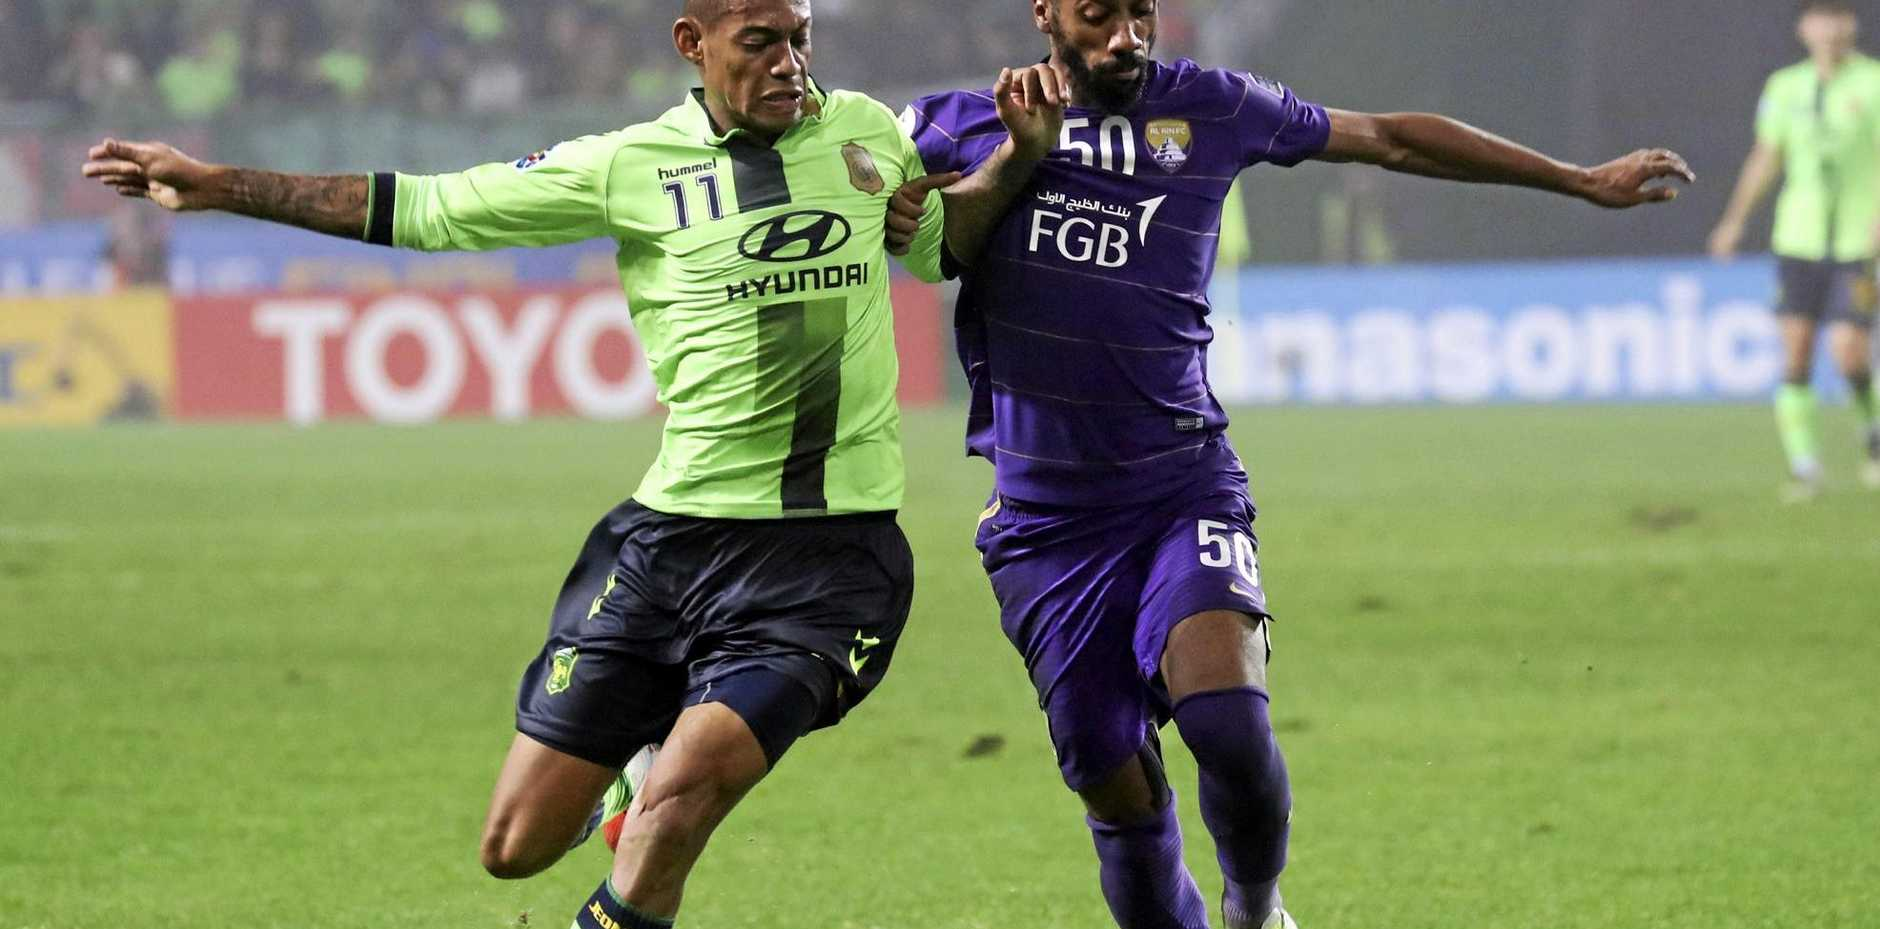 Ricardo Lopes (left) of Jeonbuk Motors fights for the ball with Mohammed Fayez of Al Ain.